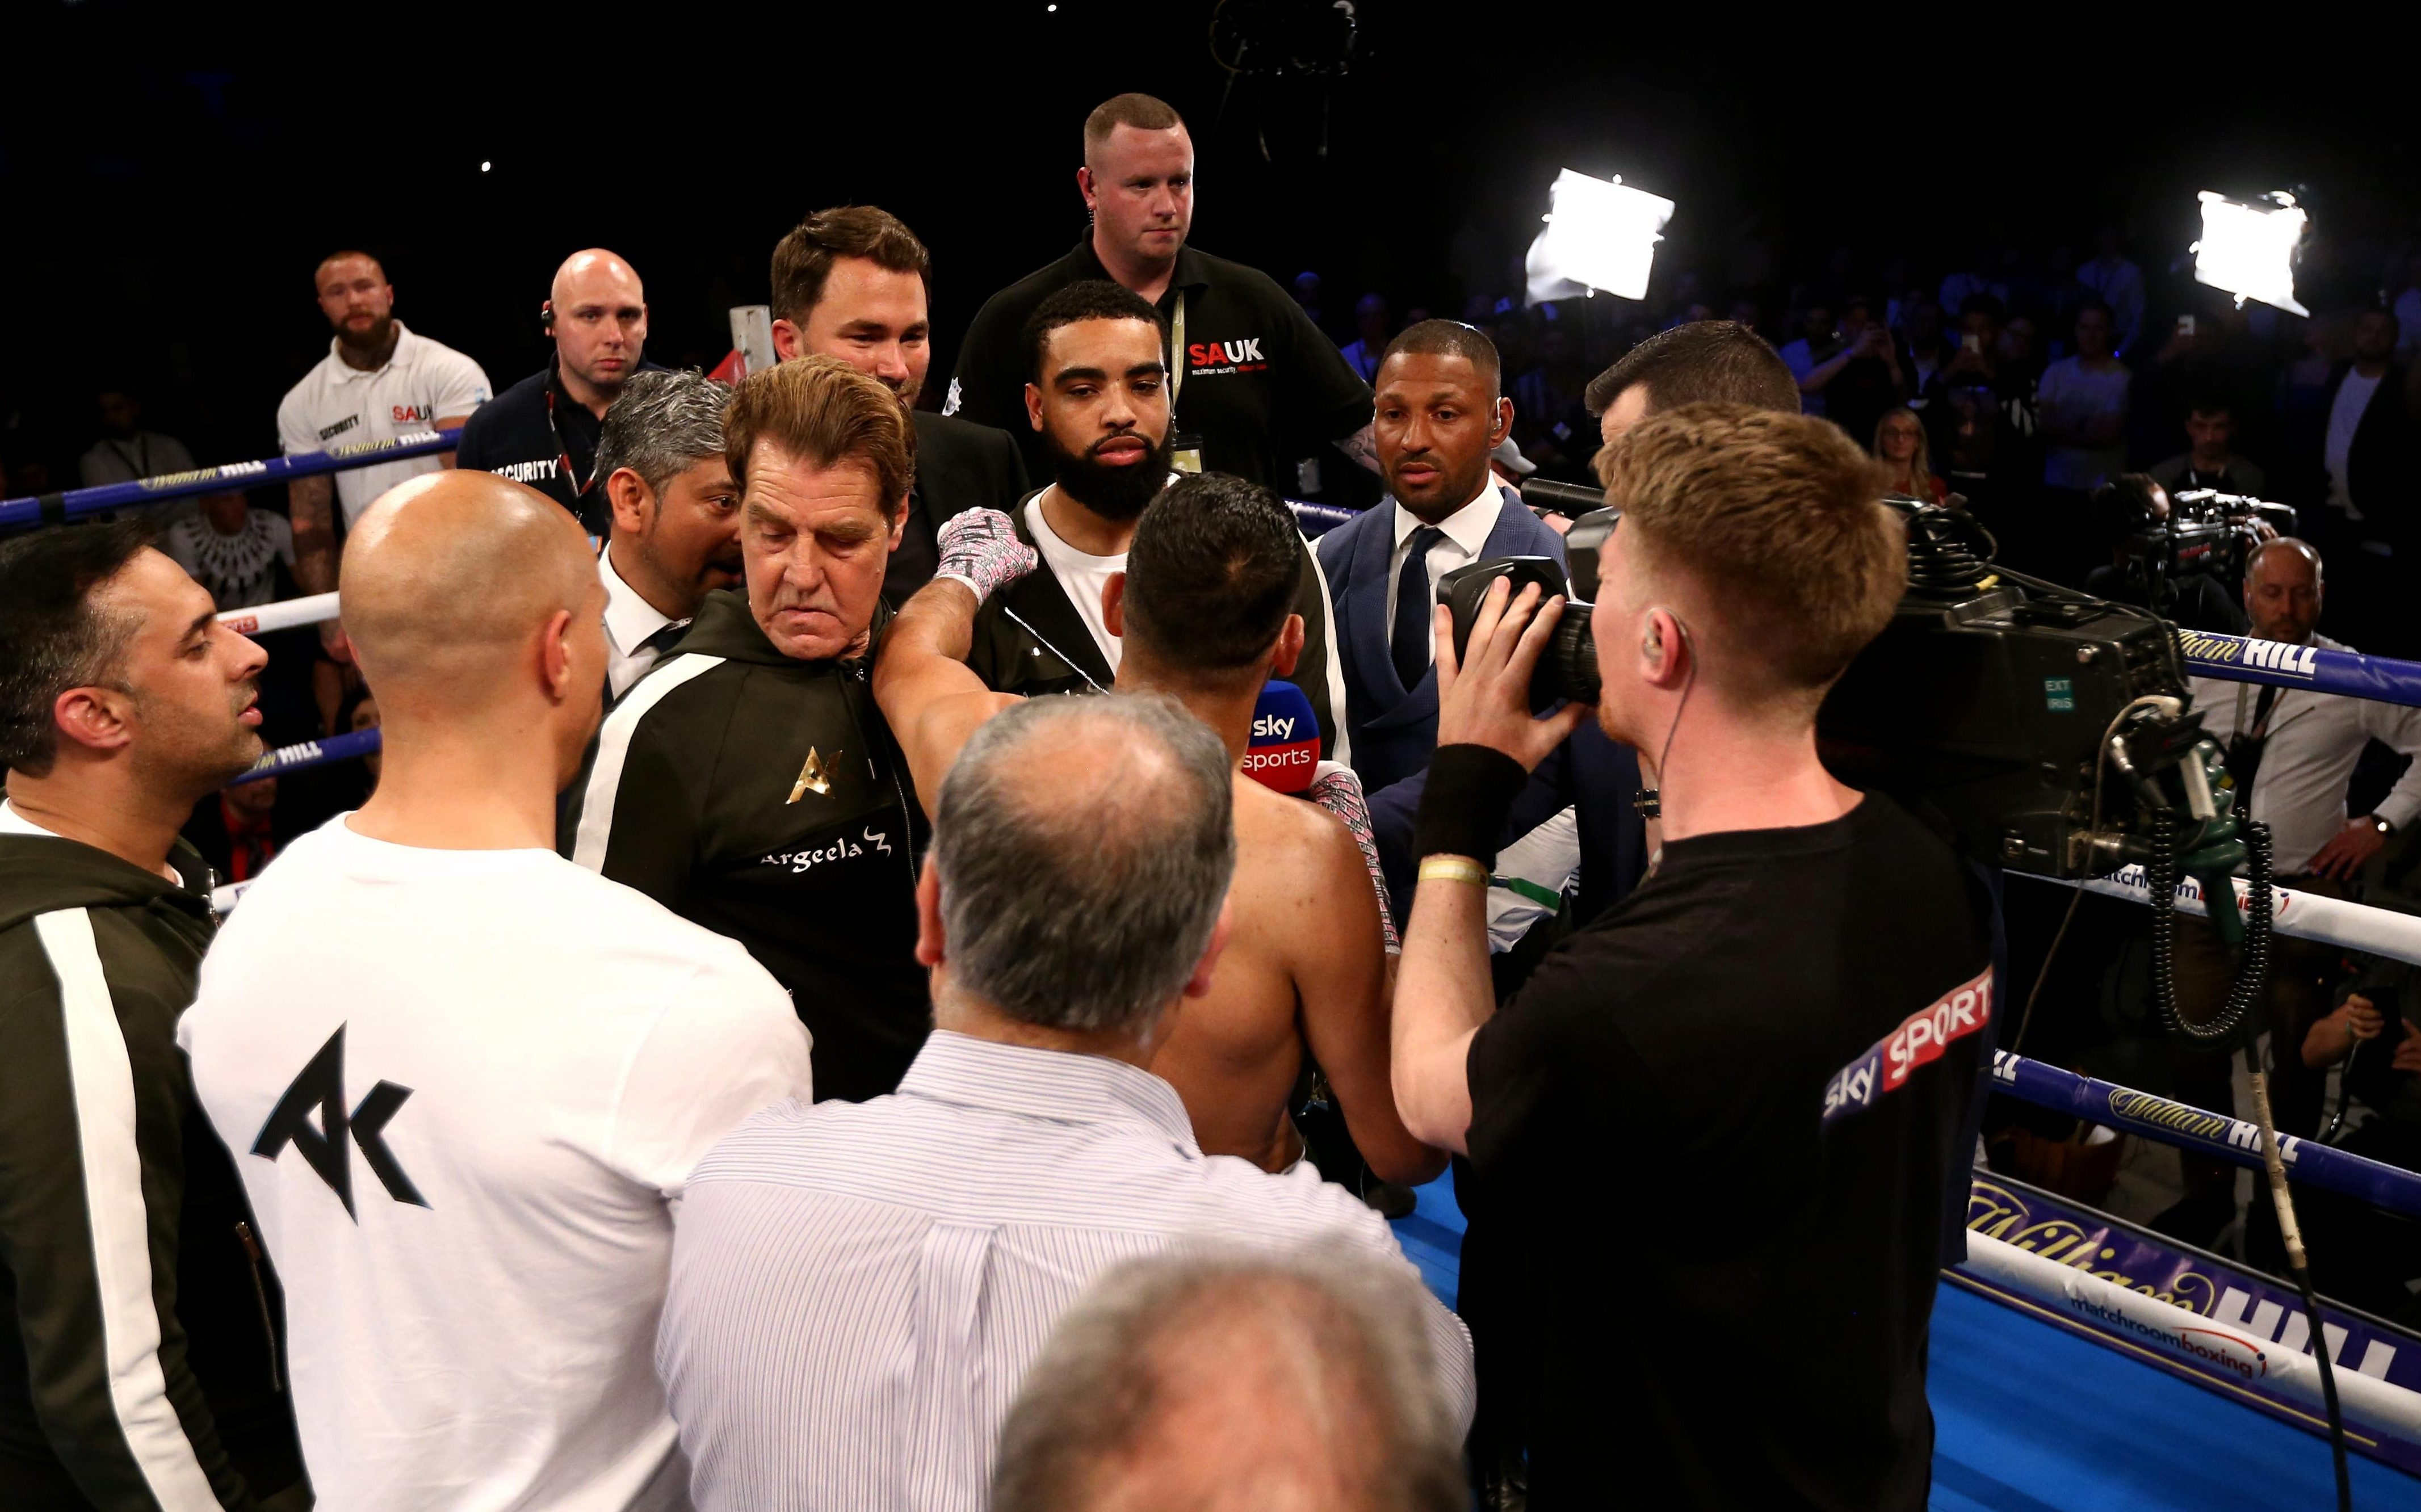 Amir Khan and Kell Brook faced off in the ring after the fight